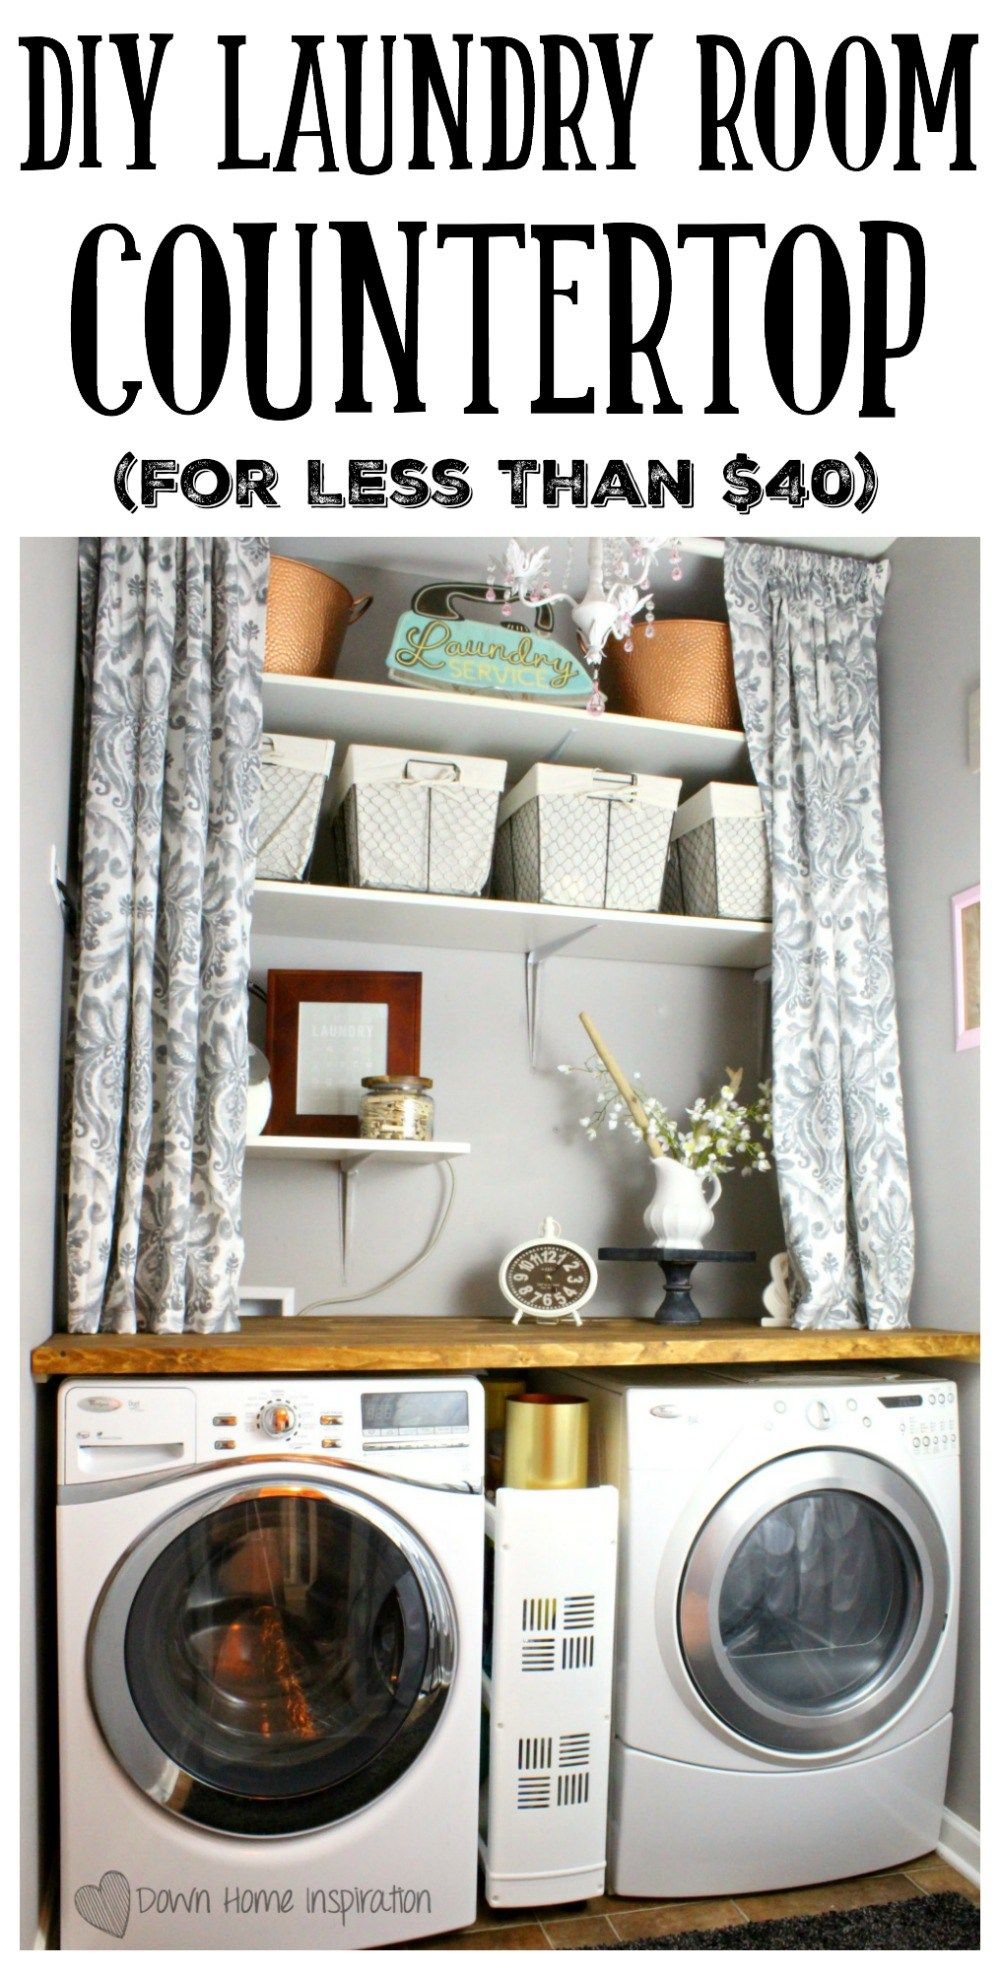 Diy Laundry Room Countertop For Under 40 Walks Washers